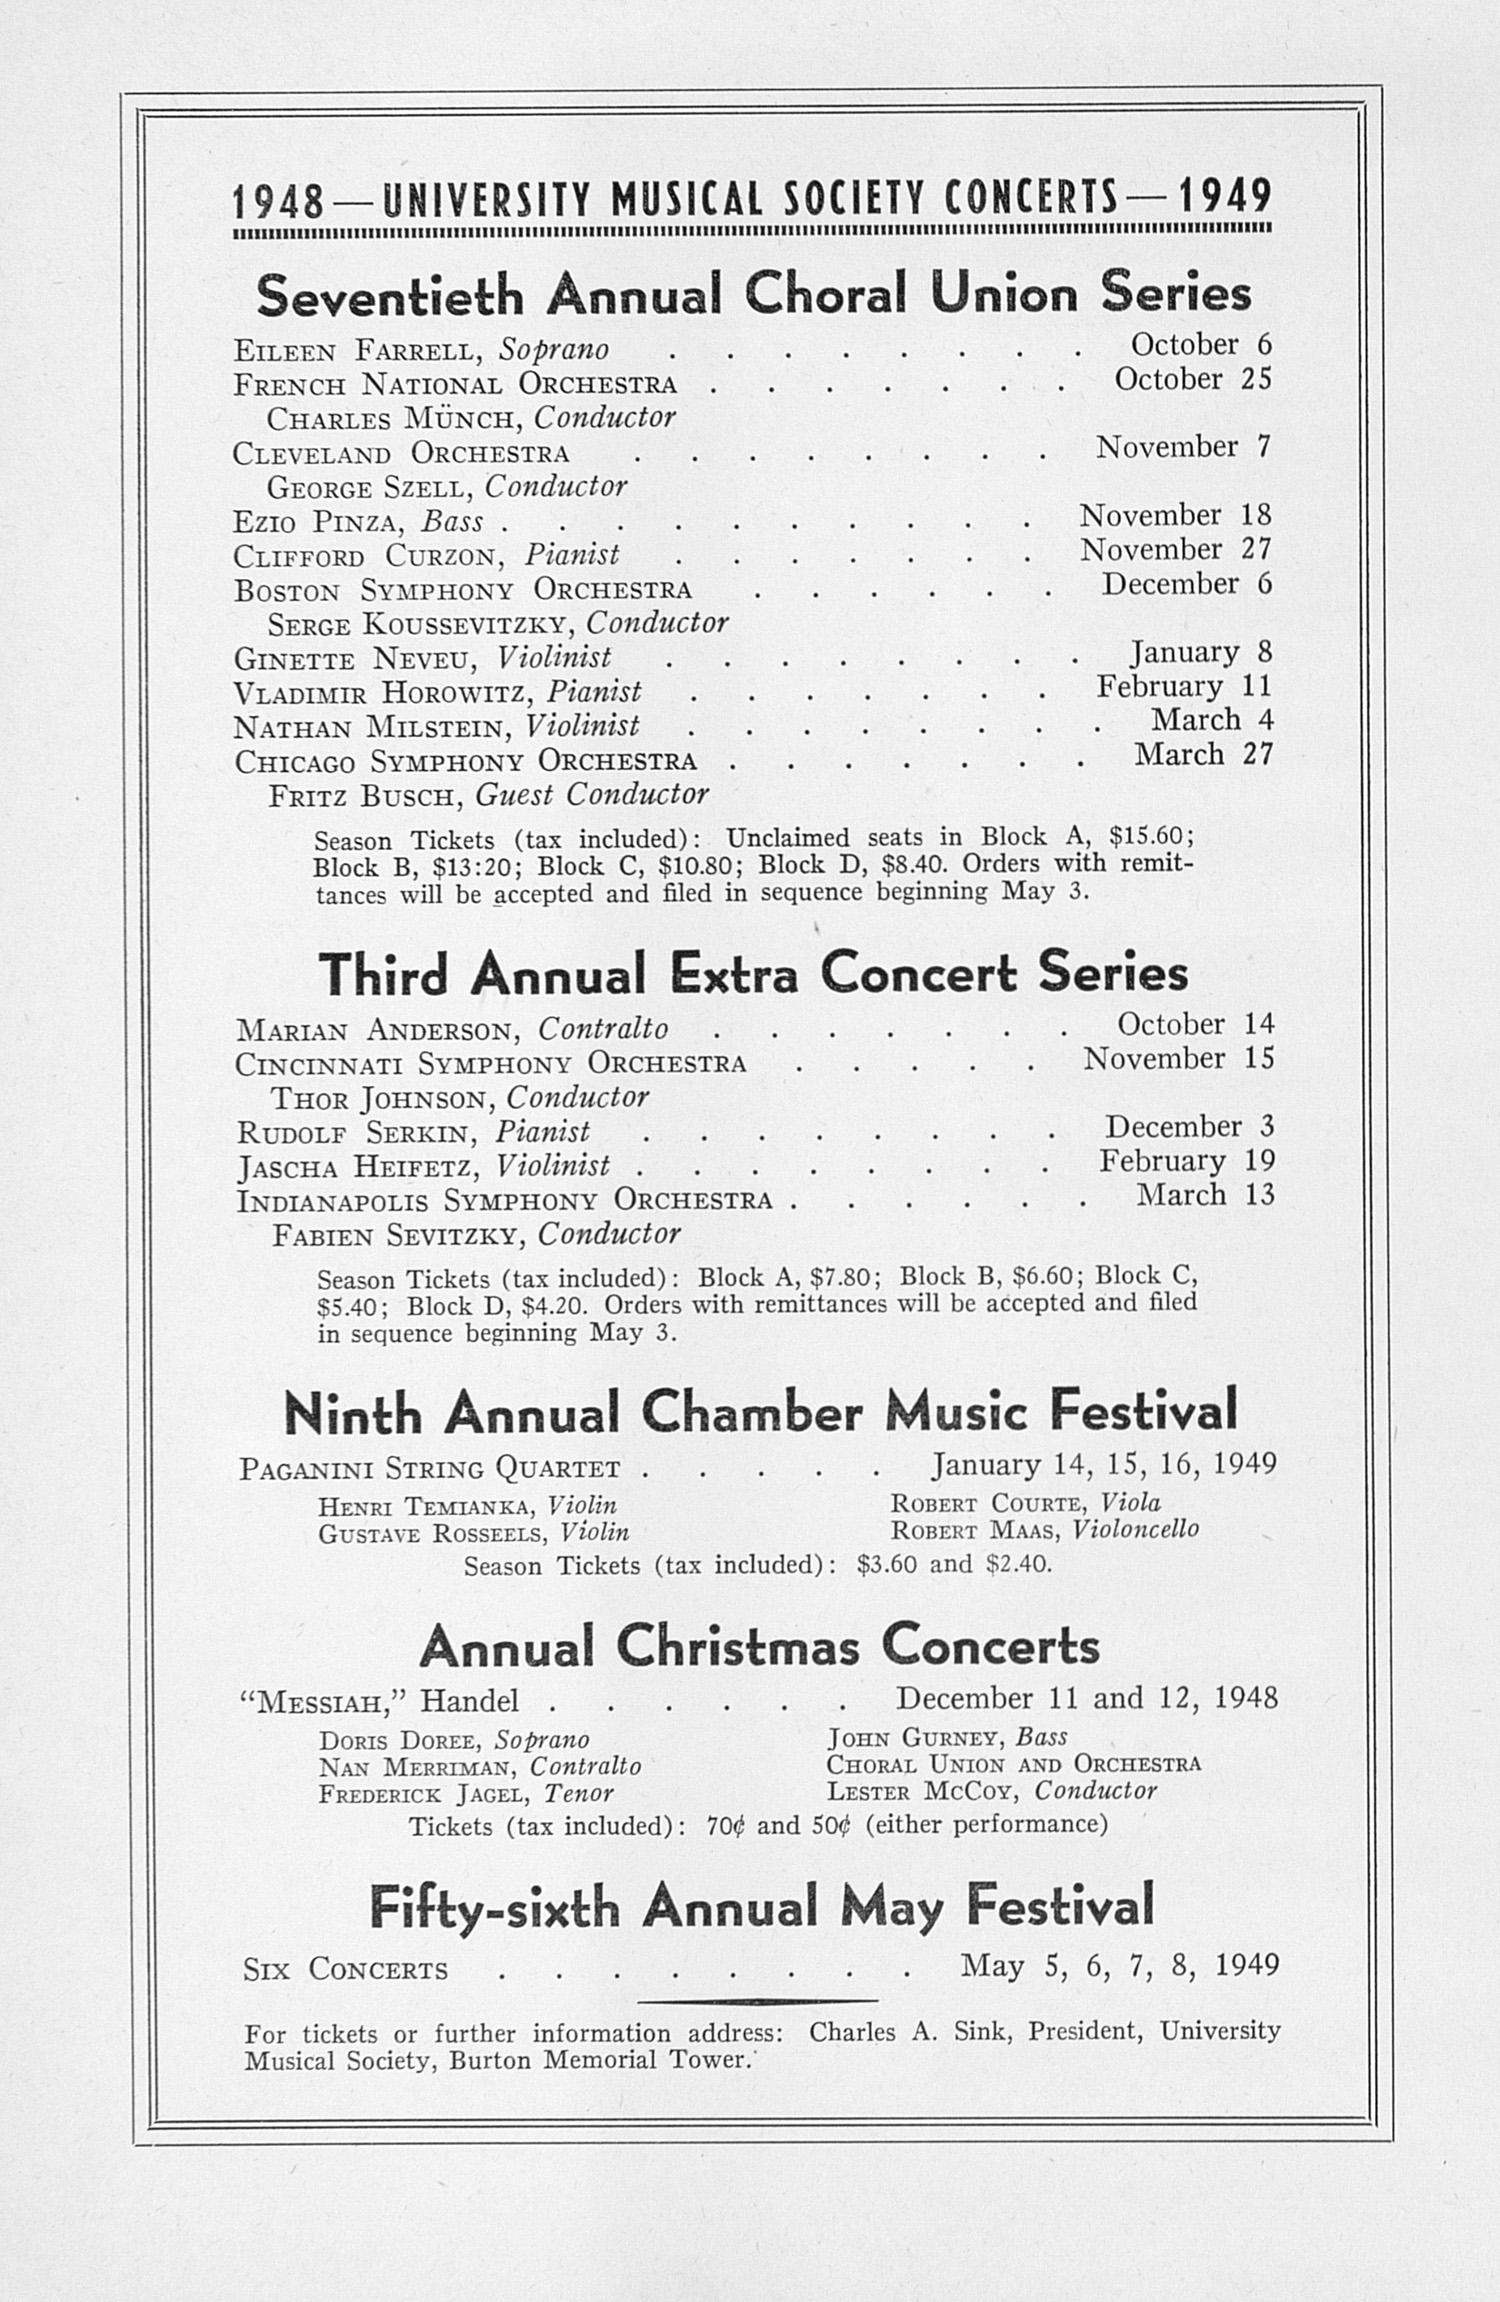 UMS Concert Program, April 29, 1948: Fifty-fifth Annual May Festival -- The Philadelphia Orchestra image